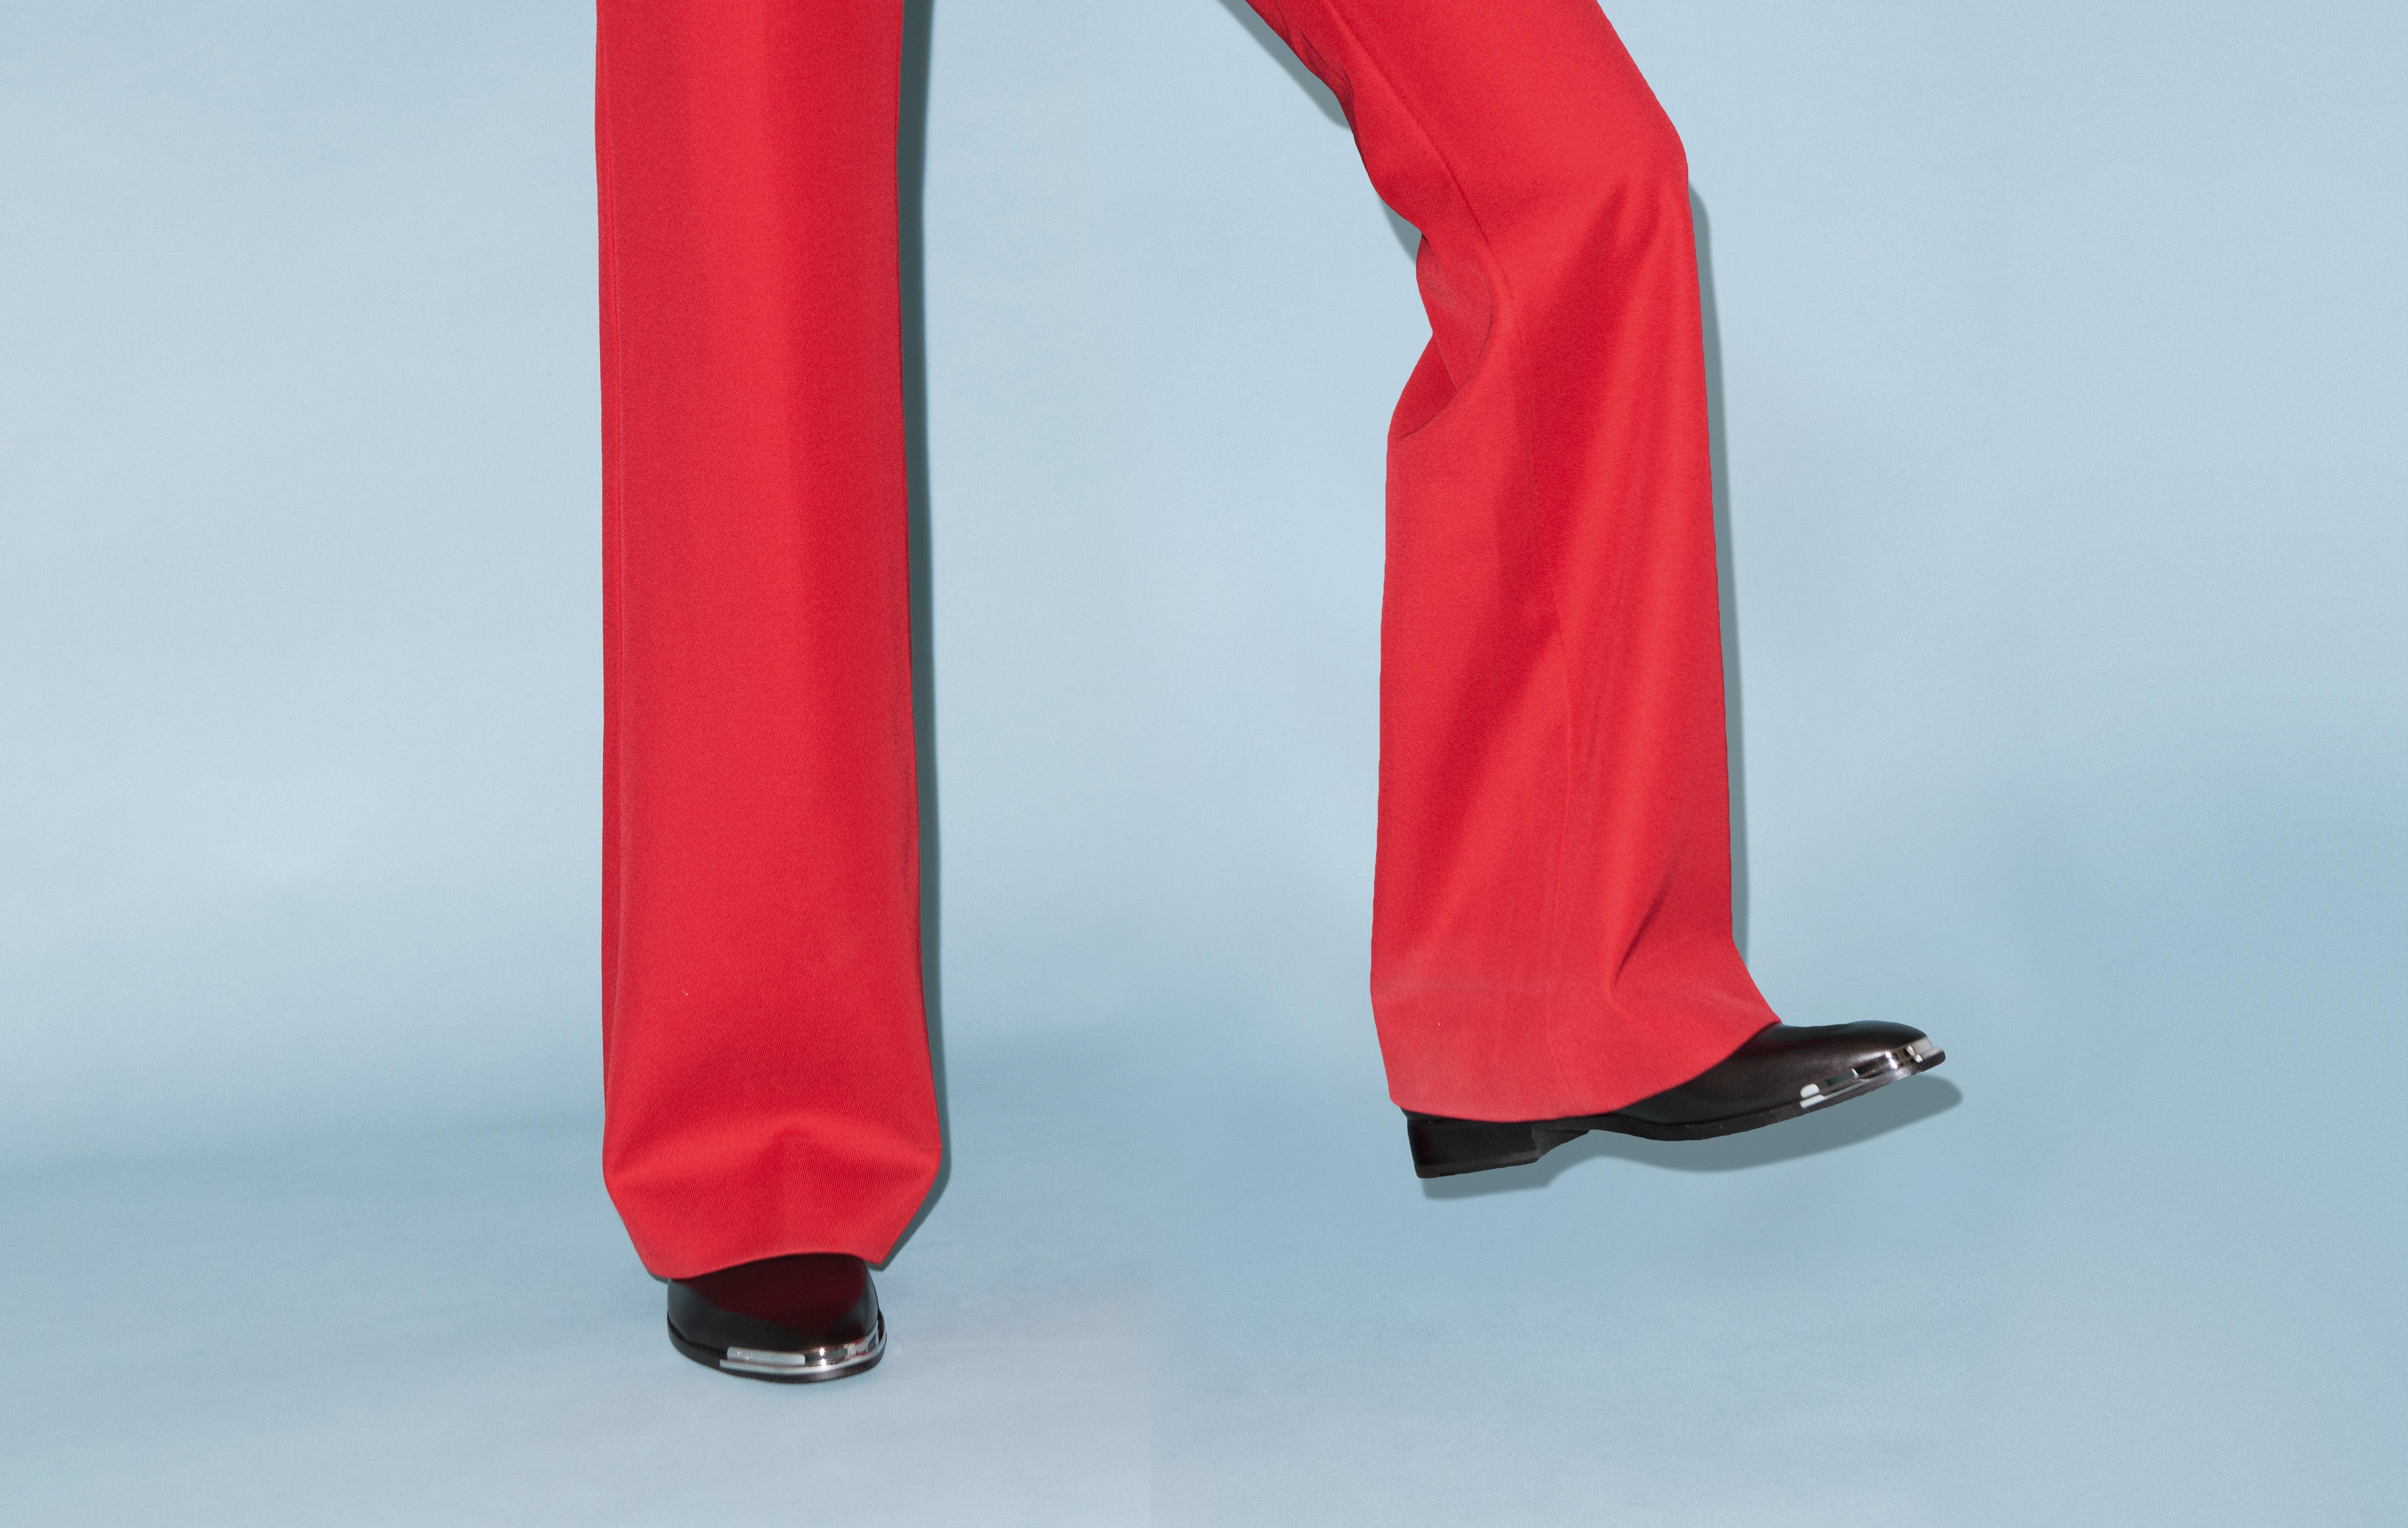 Wide boy: what the return of flared trousers means for men